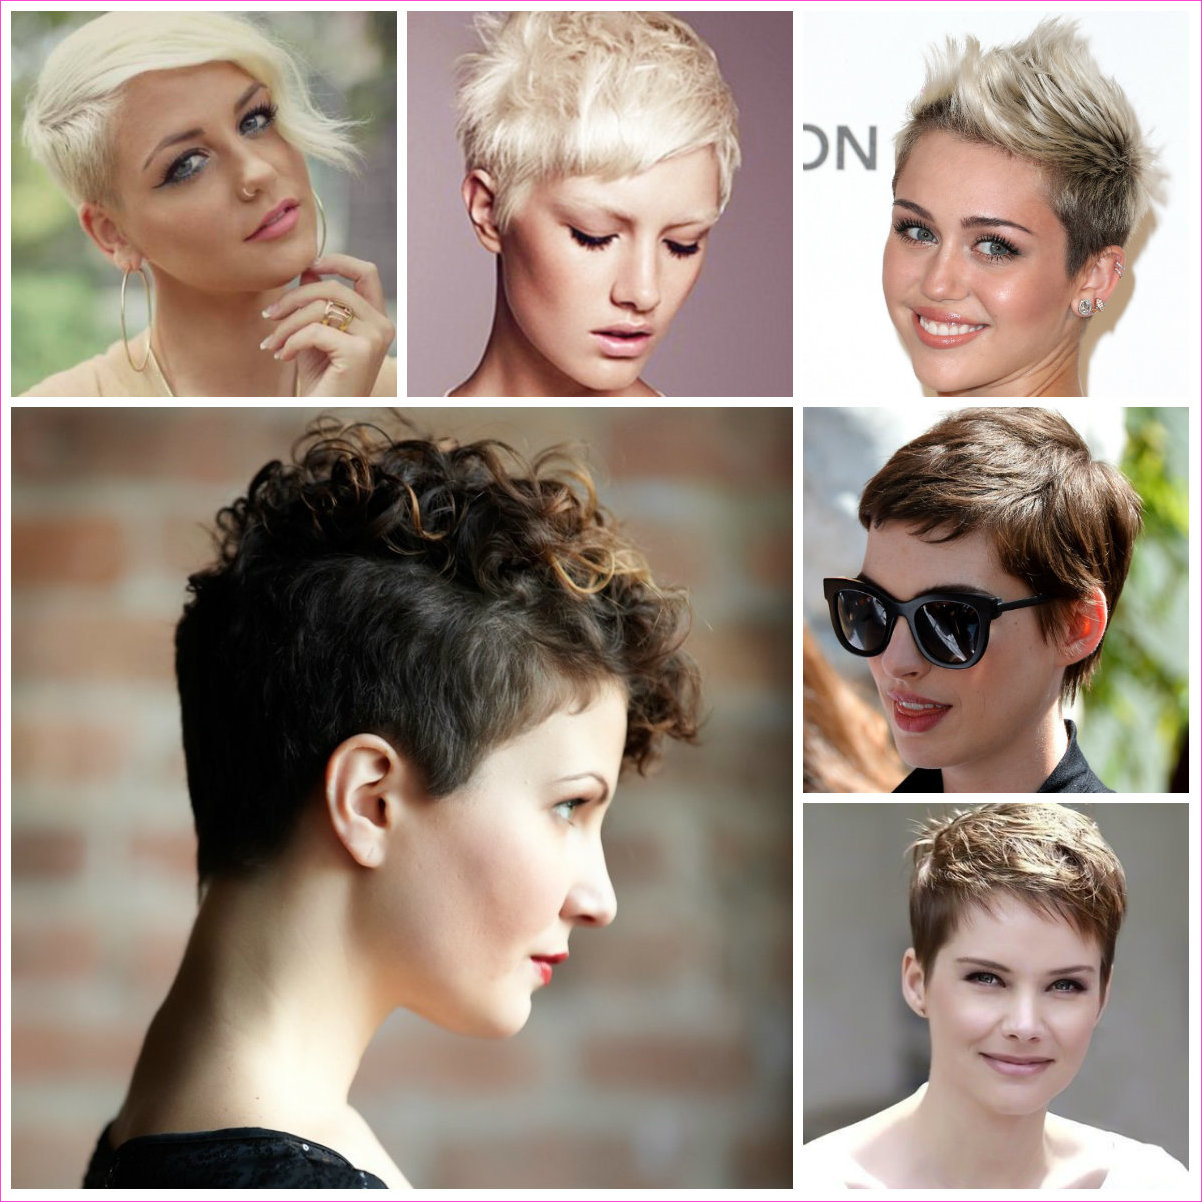 10 Trendy Pixie Haircuts for 2019 | Haircuts, Hairstyles 2019 and ...